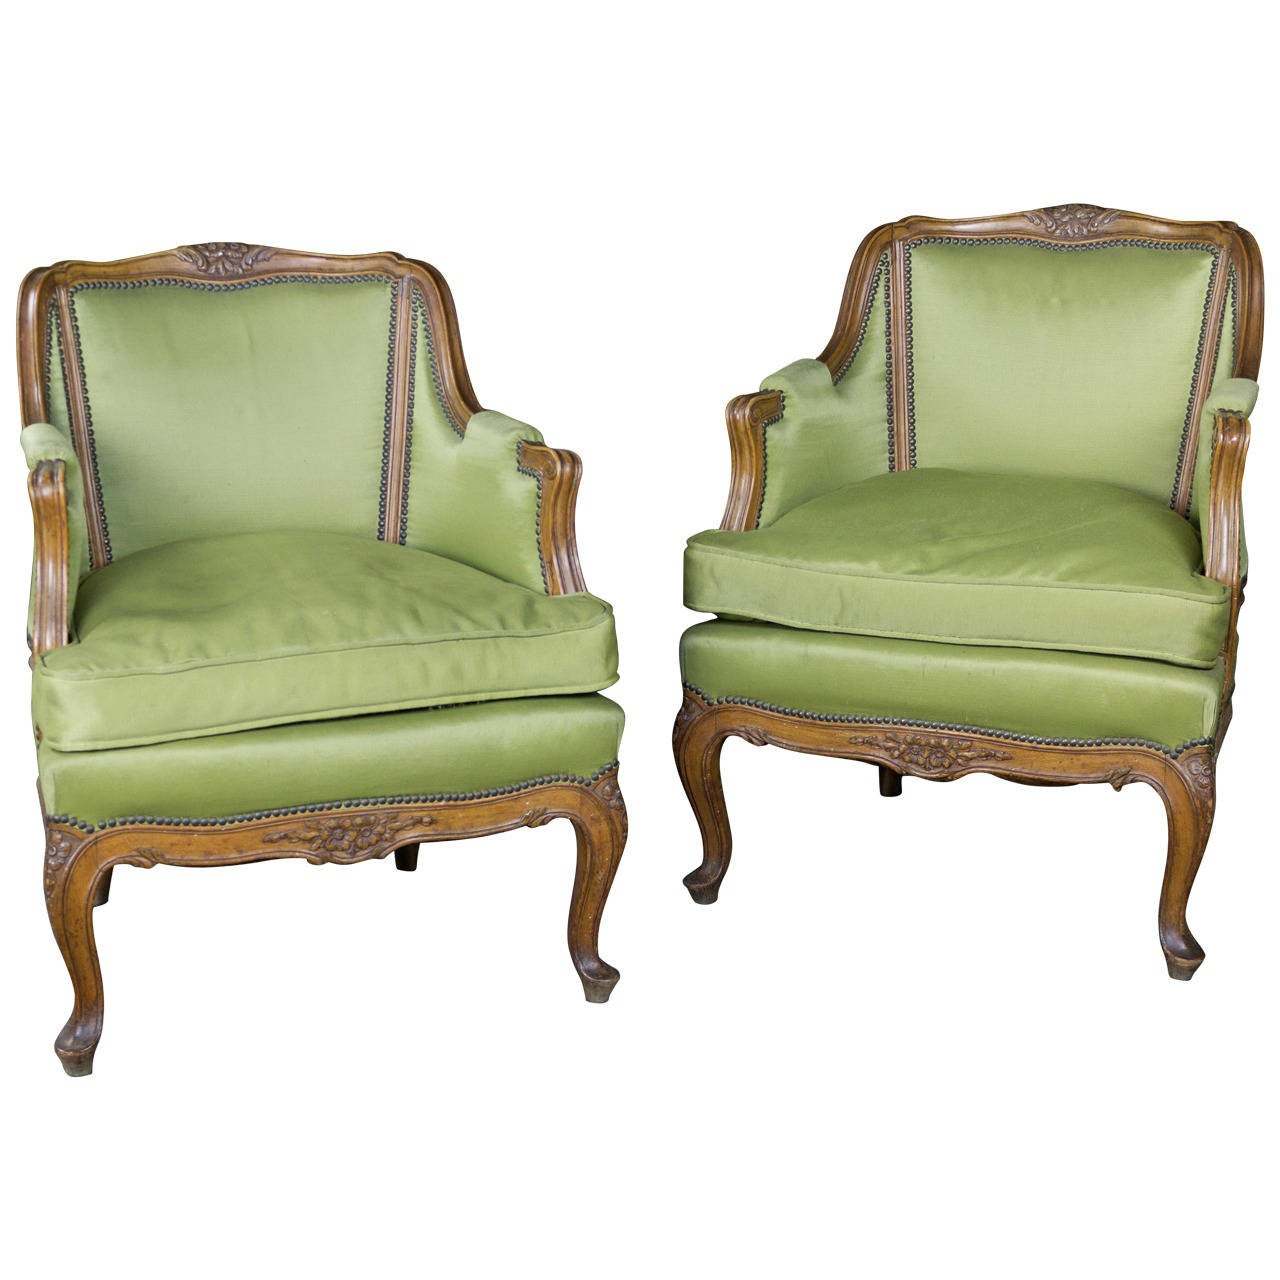 Pair of Louis XV Style Green Armchairs with Exposed Wood Frame